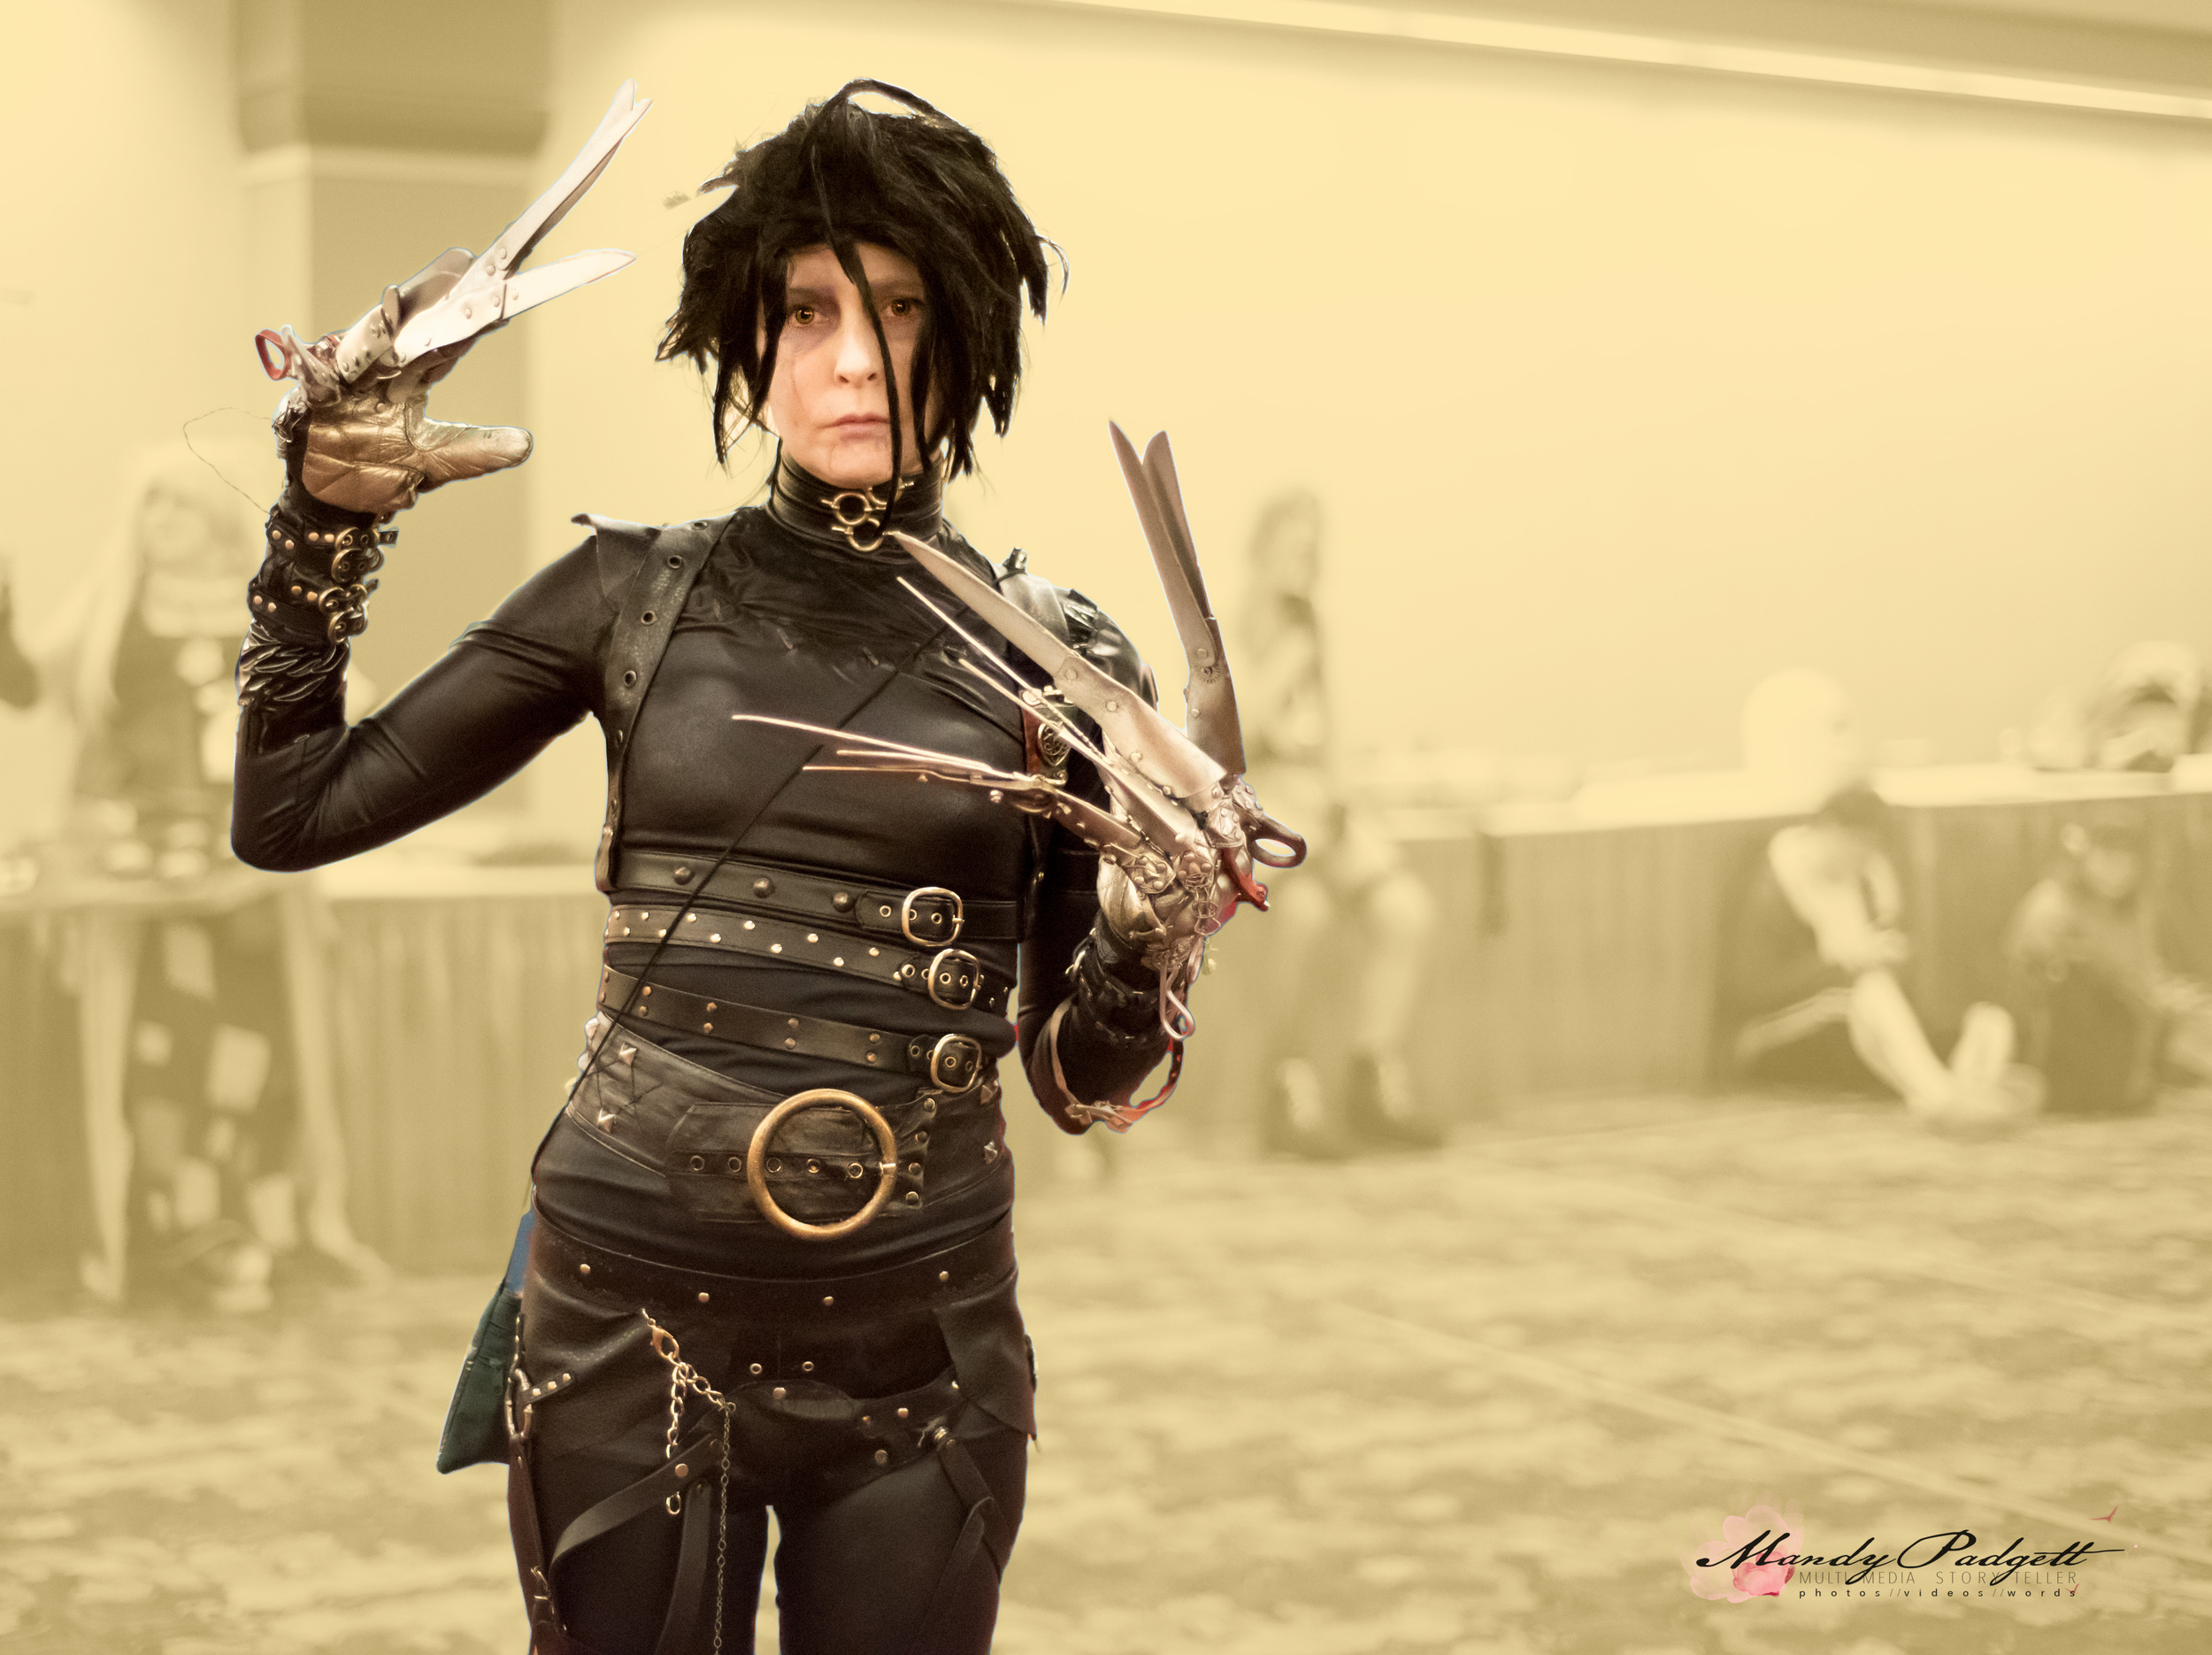 gencon watermark day 2-9.jpg